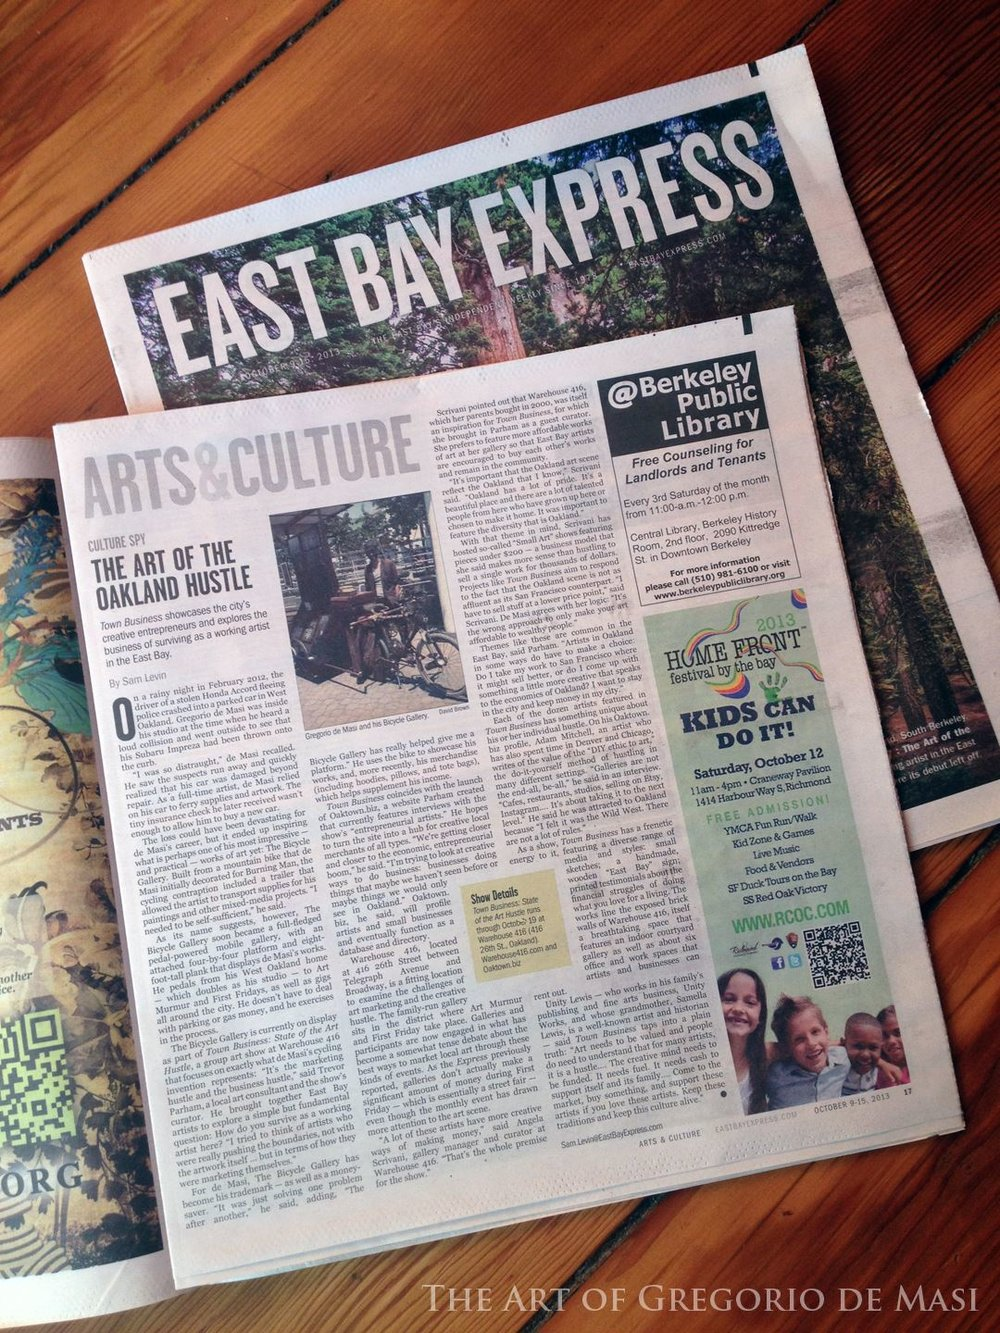 East Bay Express   interviewed me for an article about the Art of the Oakland Hustle, and my Bicycle Art Gallery   ARTICLE:    eastbayexpress.com/oakland/the-art-of-the-oakland-hustle     VIDEO INTERVIEW:    https://www.youtube.com/watch?v=sRDoDXlluBE&feature=youtu.be